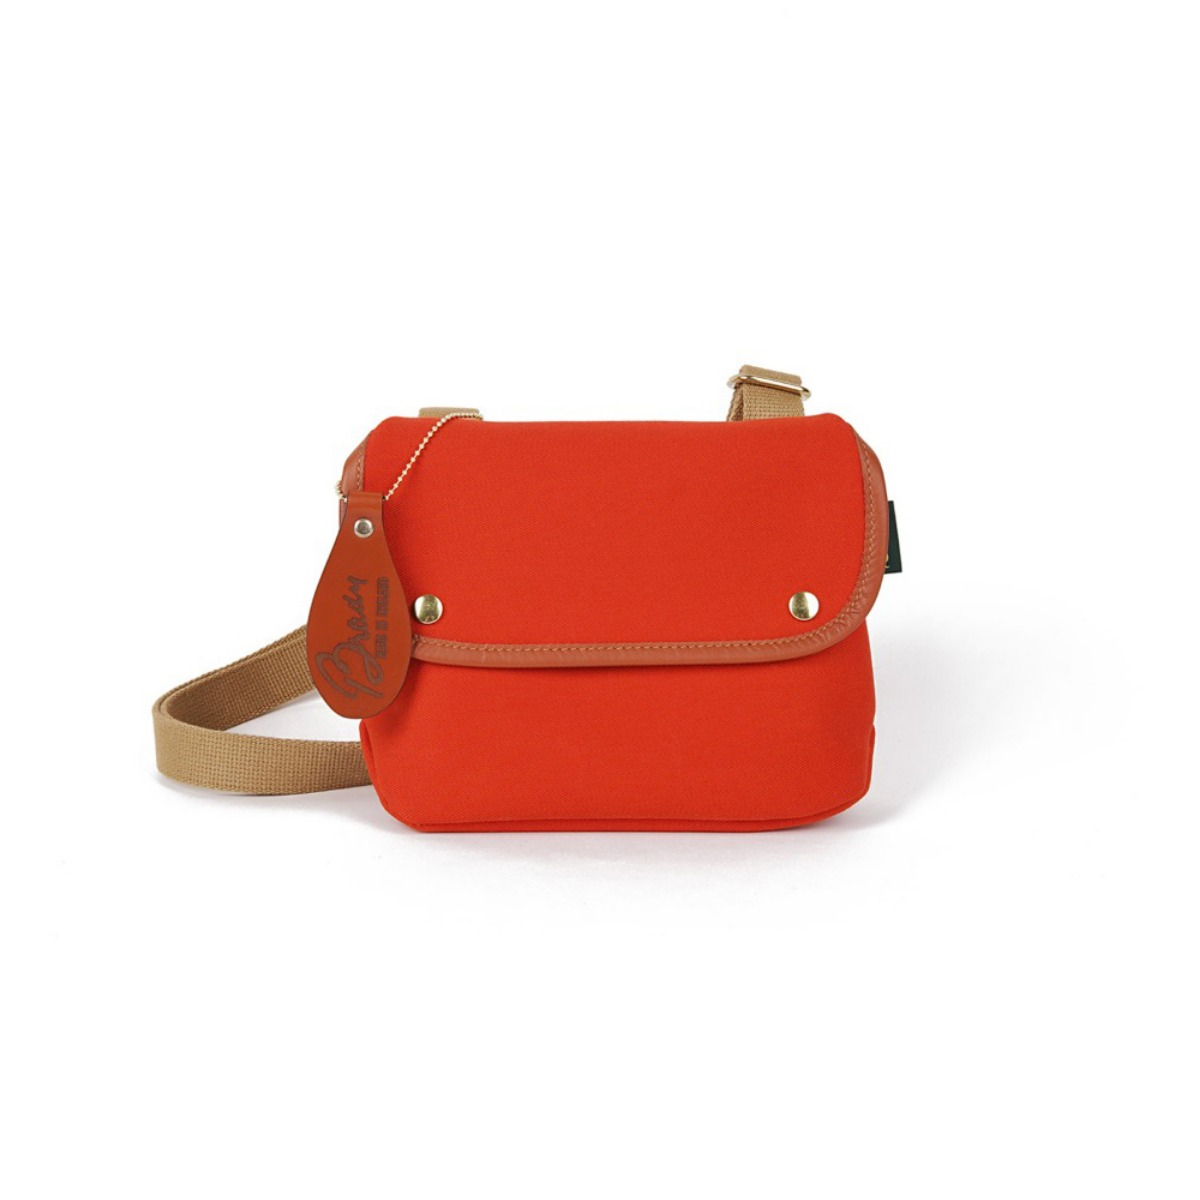 [BRADY BAGS] AVON MINI 'BURNT ORANGE'